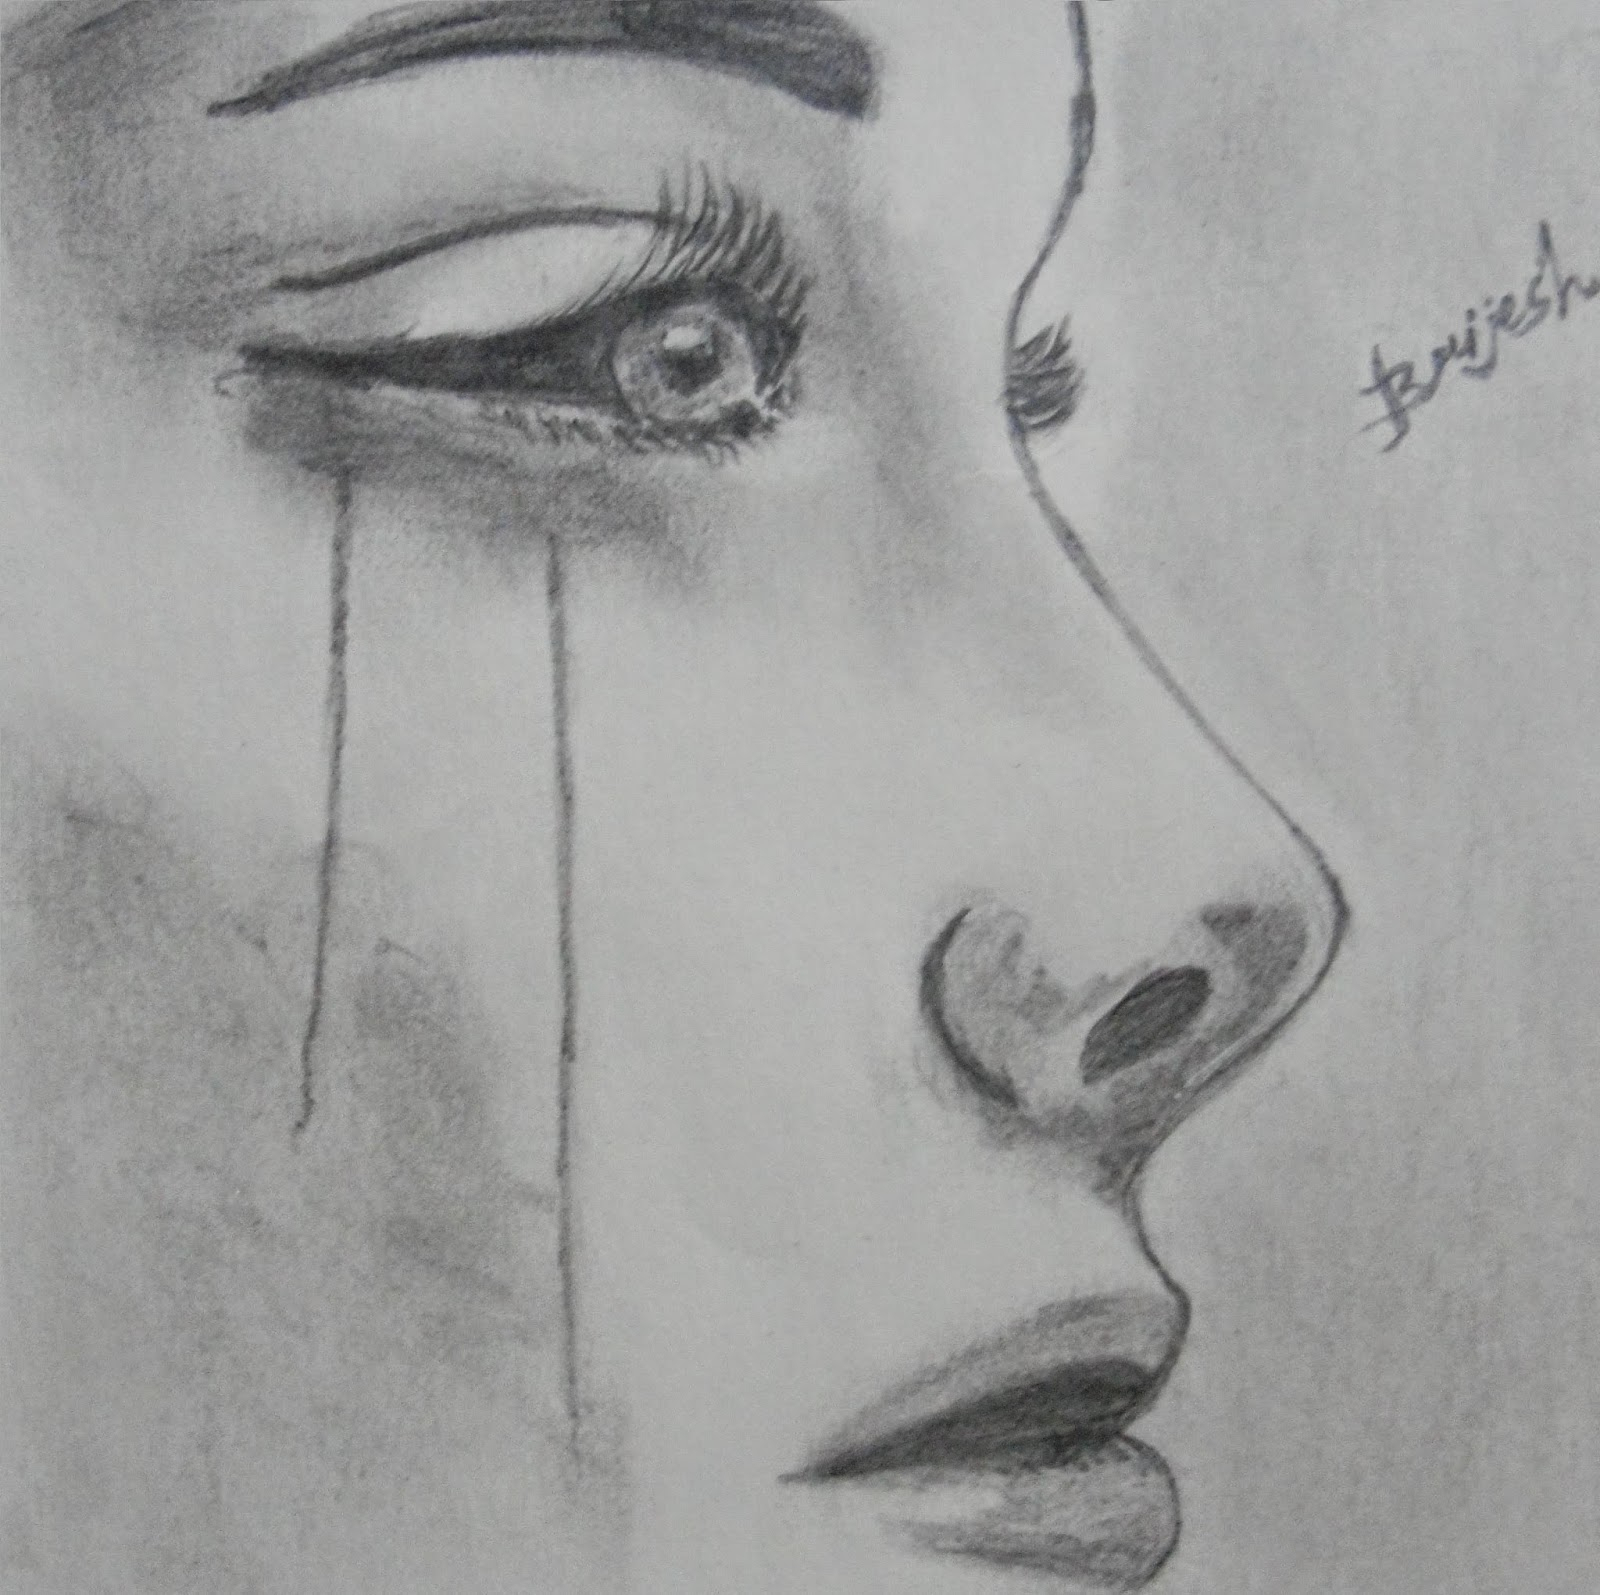 1600x1595 sad crying girl face sketch sad girl pencil sketch the bri depressed girl sketch